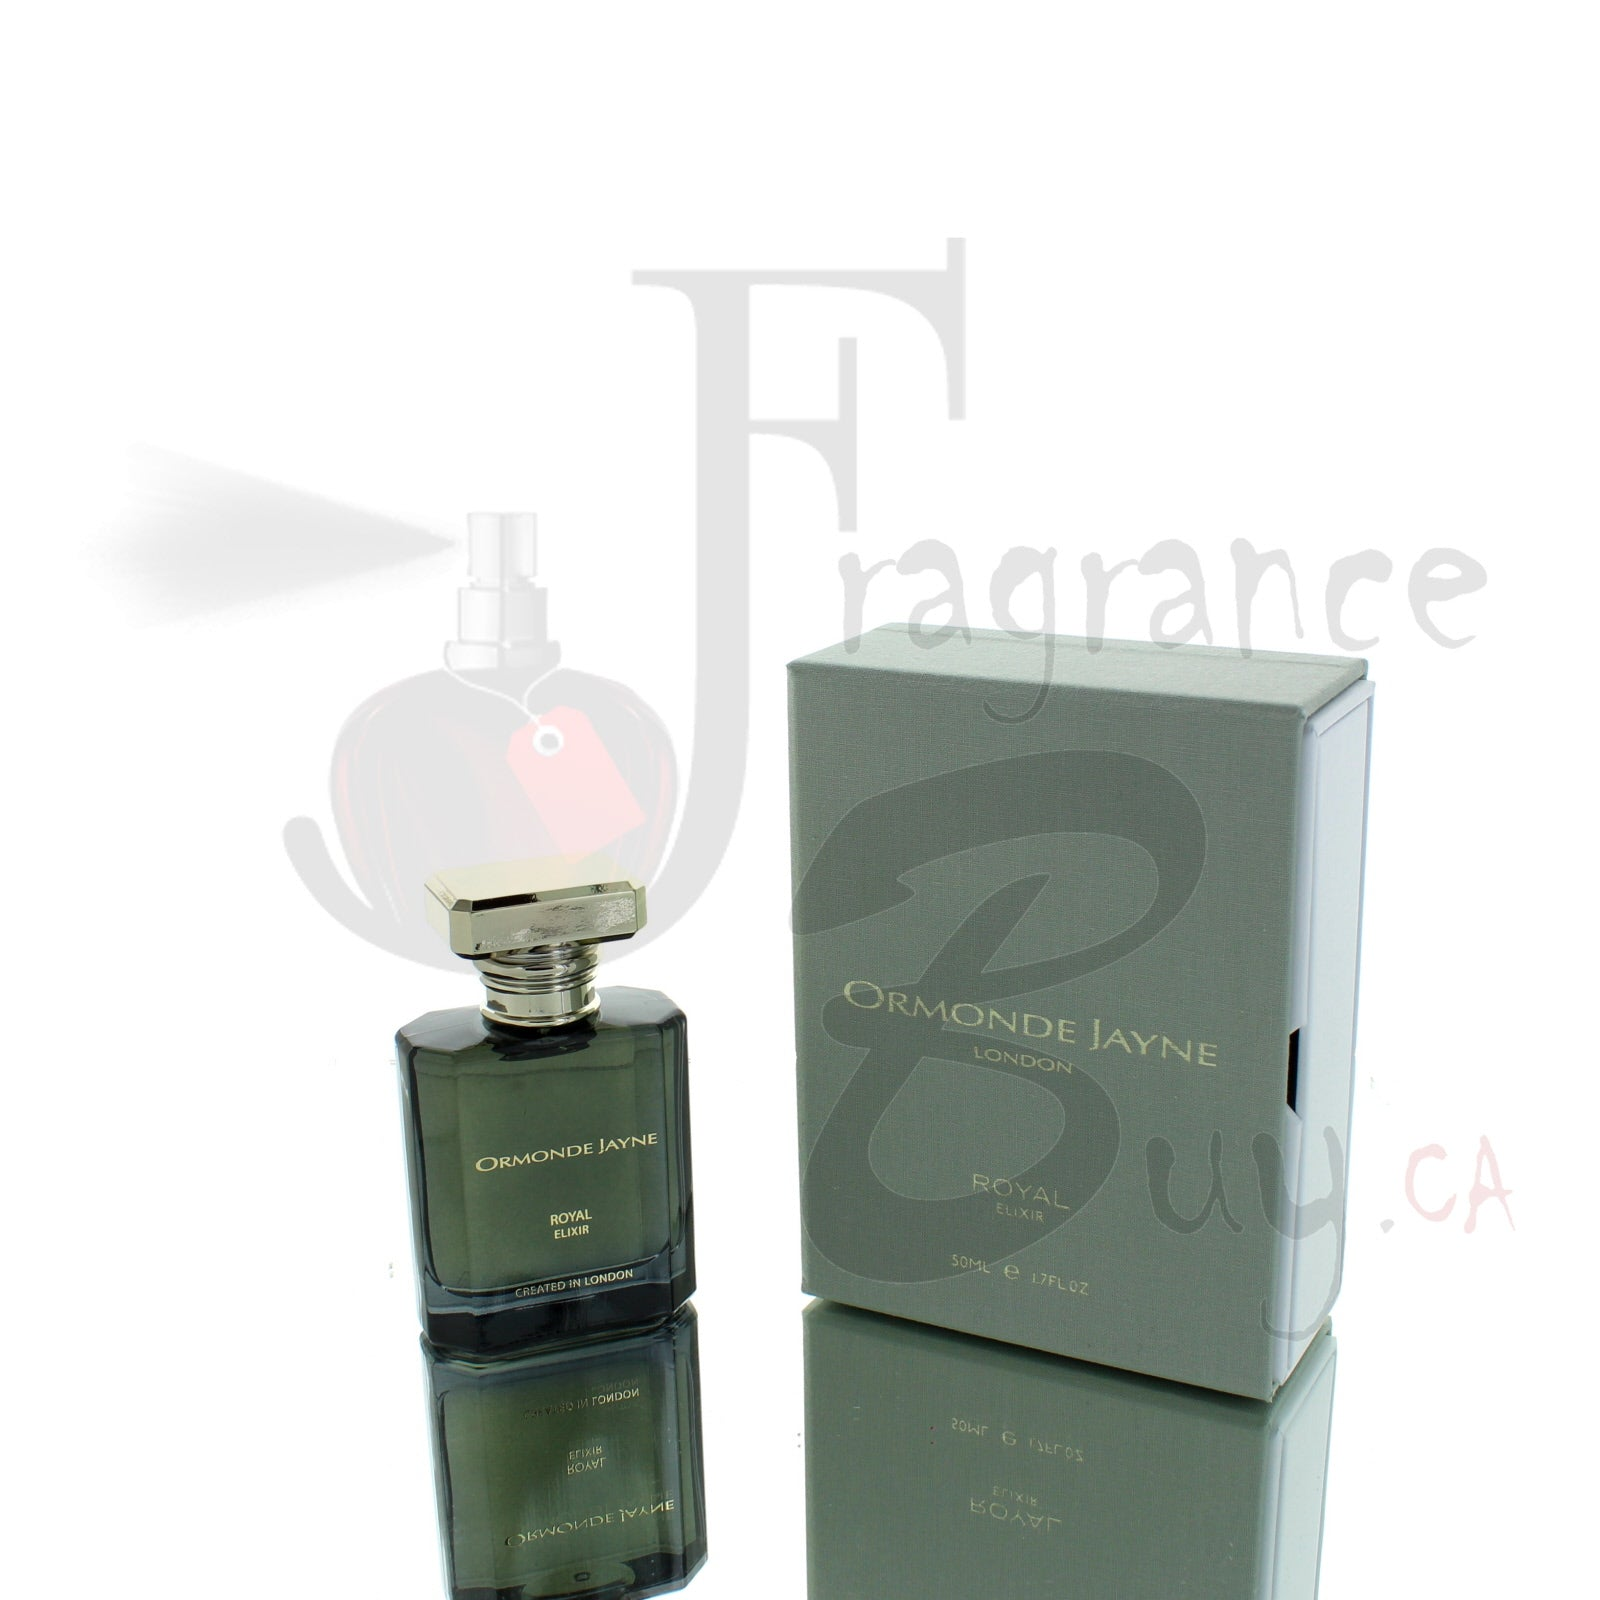 Ormonde Jayne Royal Elixir For Man/Woman